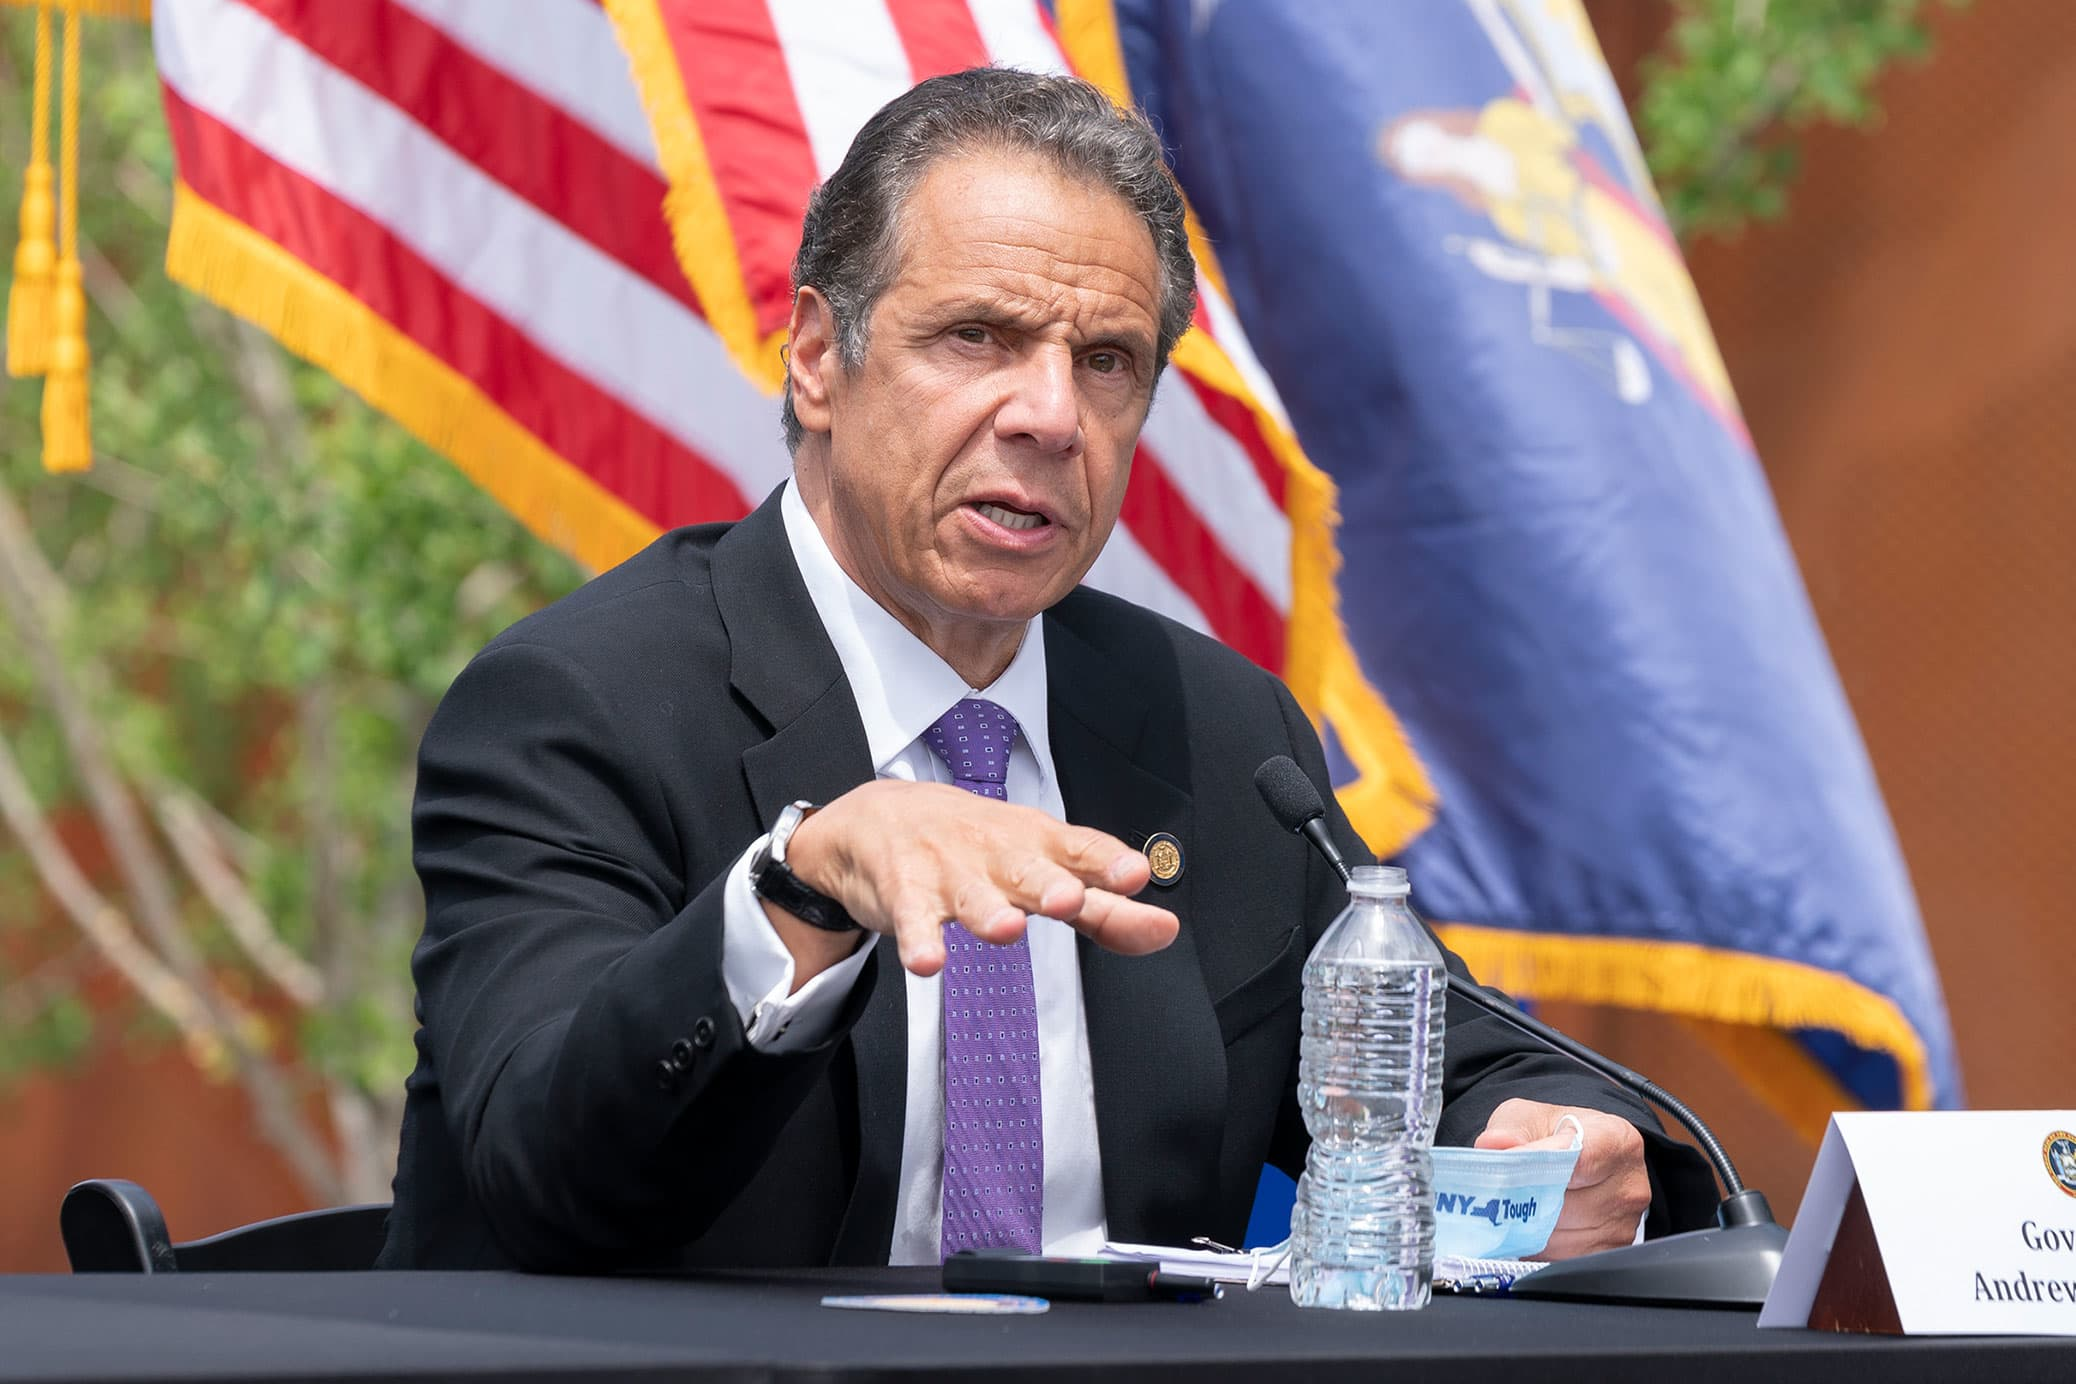 cuomo-under-fire-over-covid-death-probe-bullying-accusations